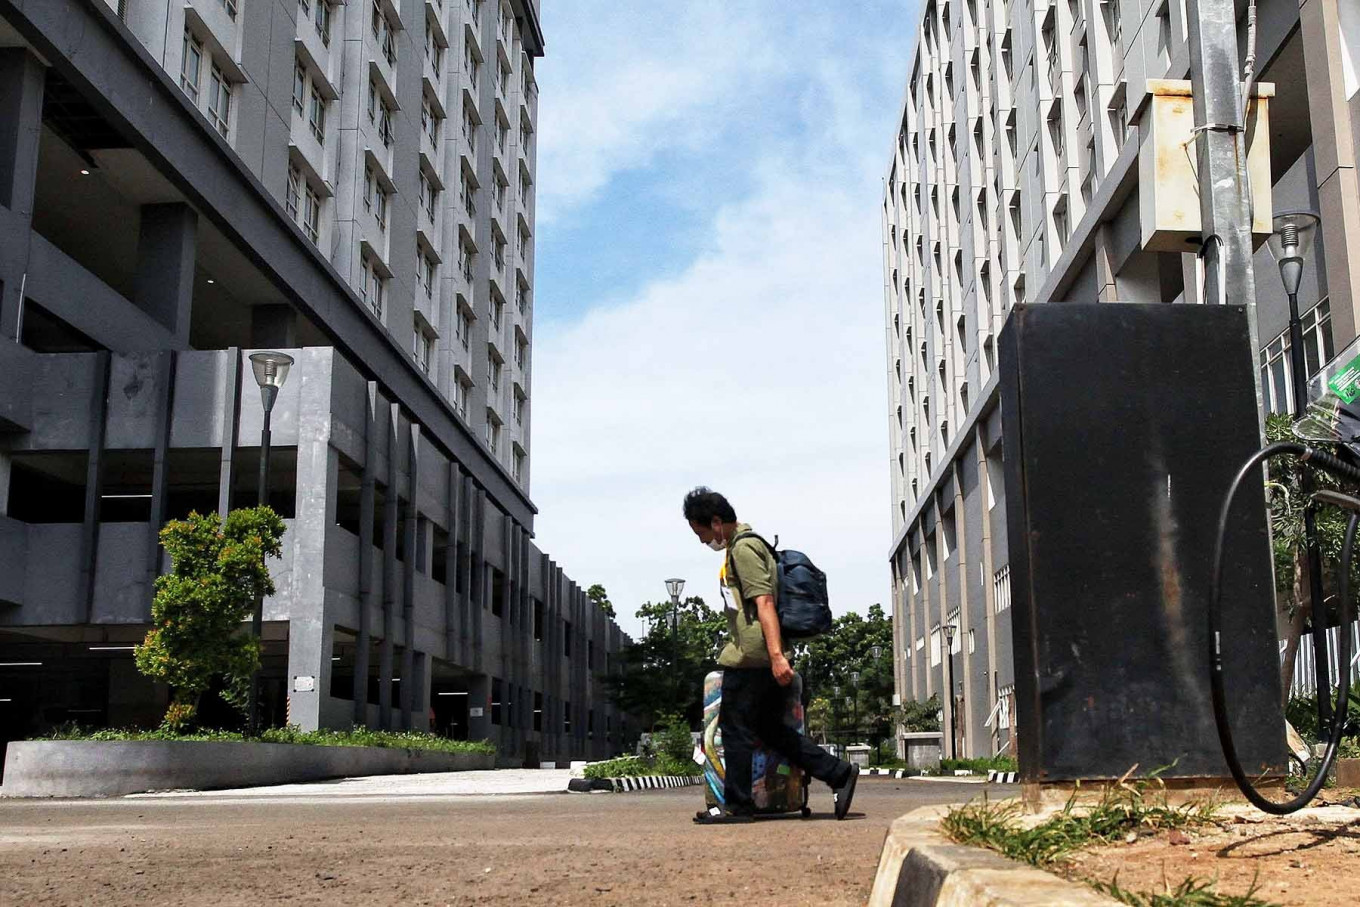 A man leaves Pademangan Athletes Village in North Jakarta, Sept. 25. The government plans to use a tower in Pademangan Athletes Village for asymptomatic COVID-19 patients if the isolation ward in the adjacent Kemayoran Athletes Village is full. JP/Seto Wardhana